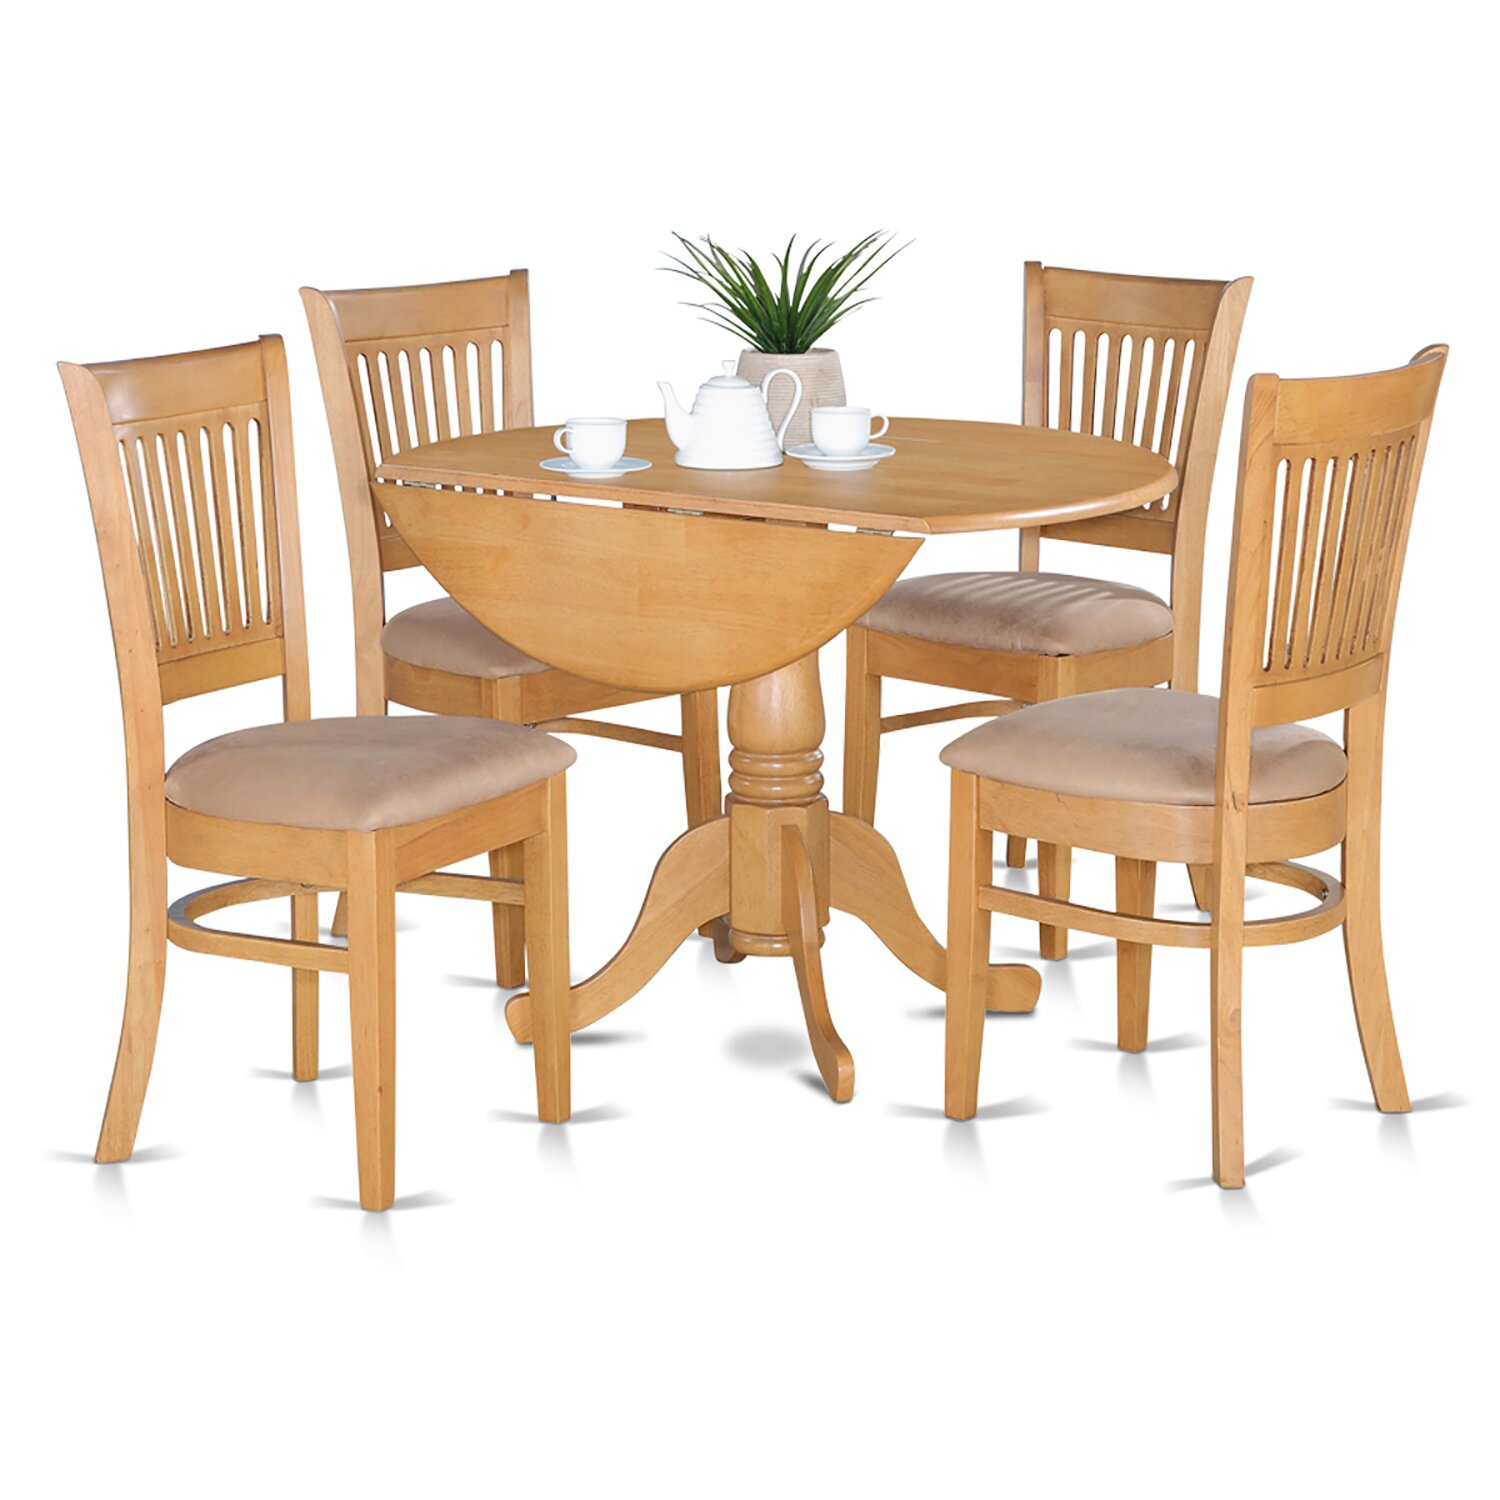 Oak Kitchen Tables And Chairs Sets: East West Dublin 5 Piece Dining Set & Reviews